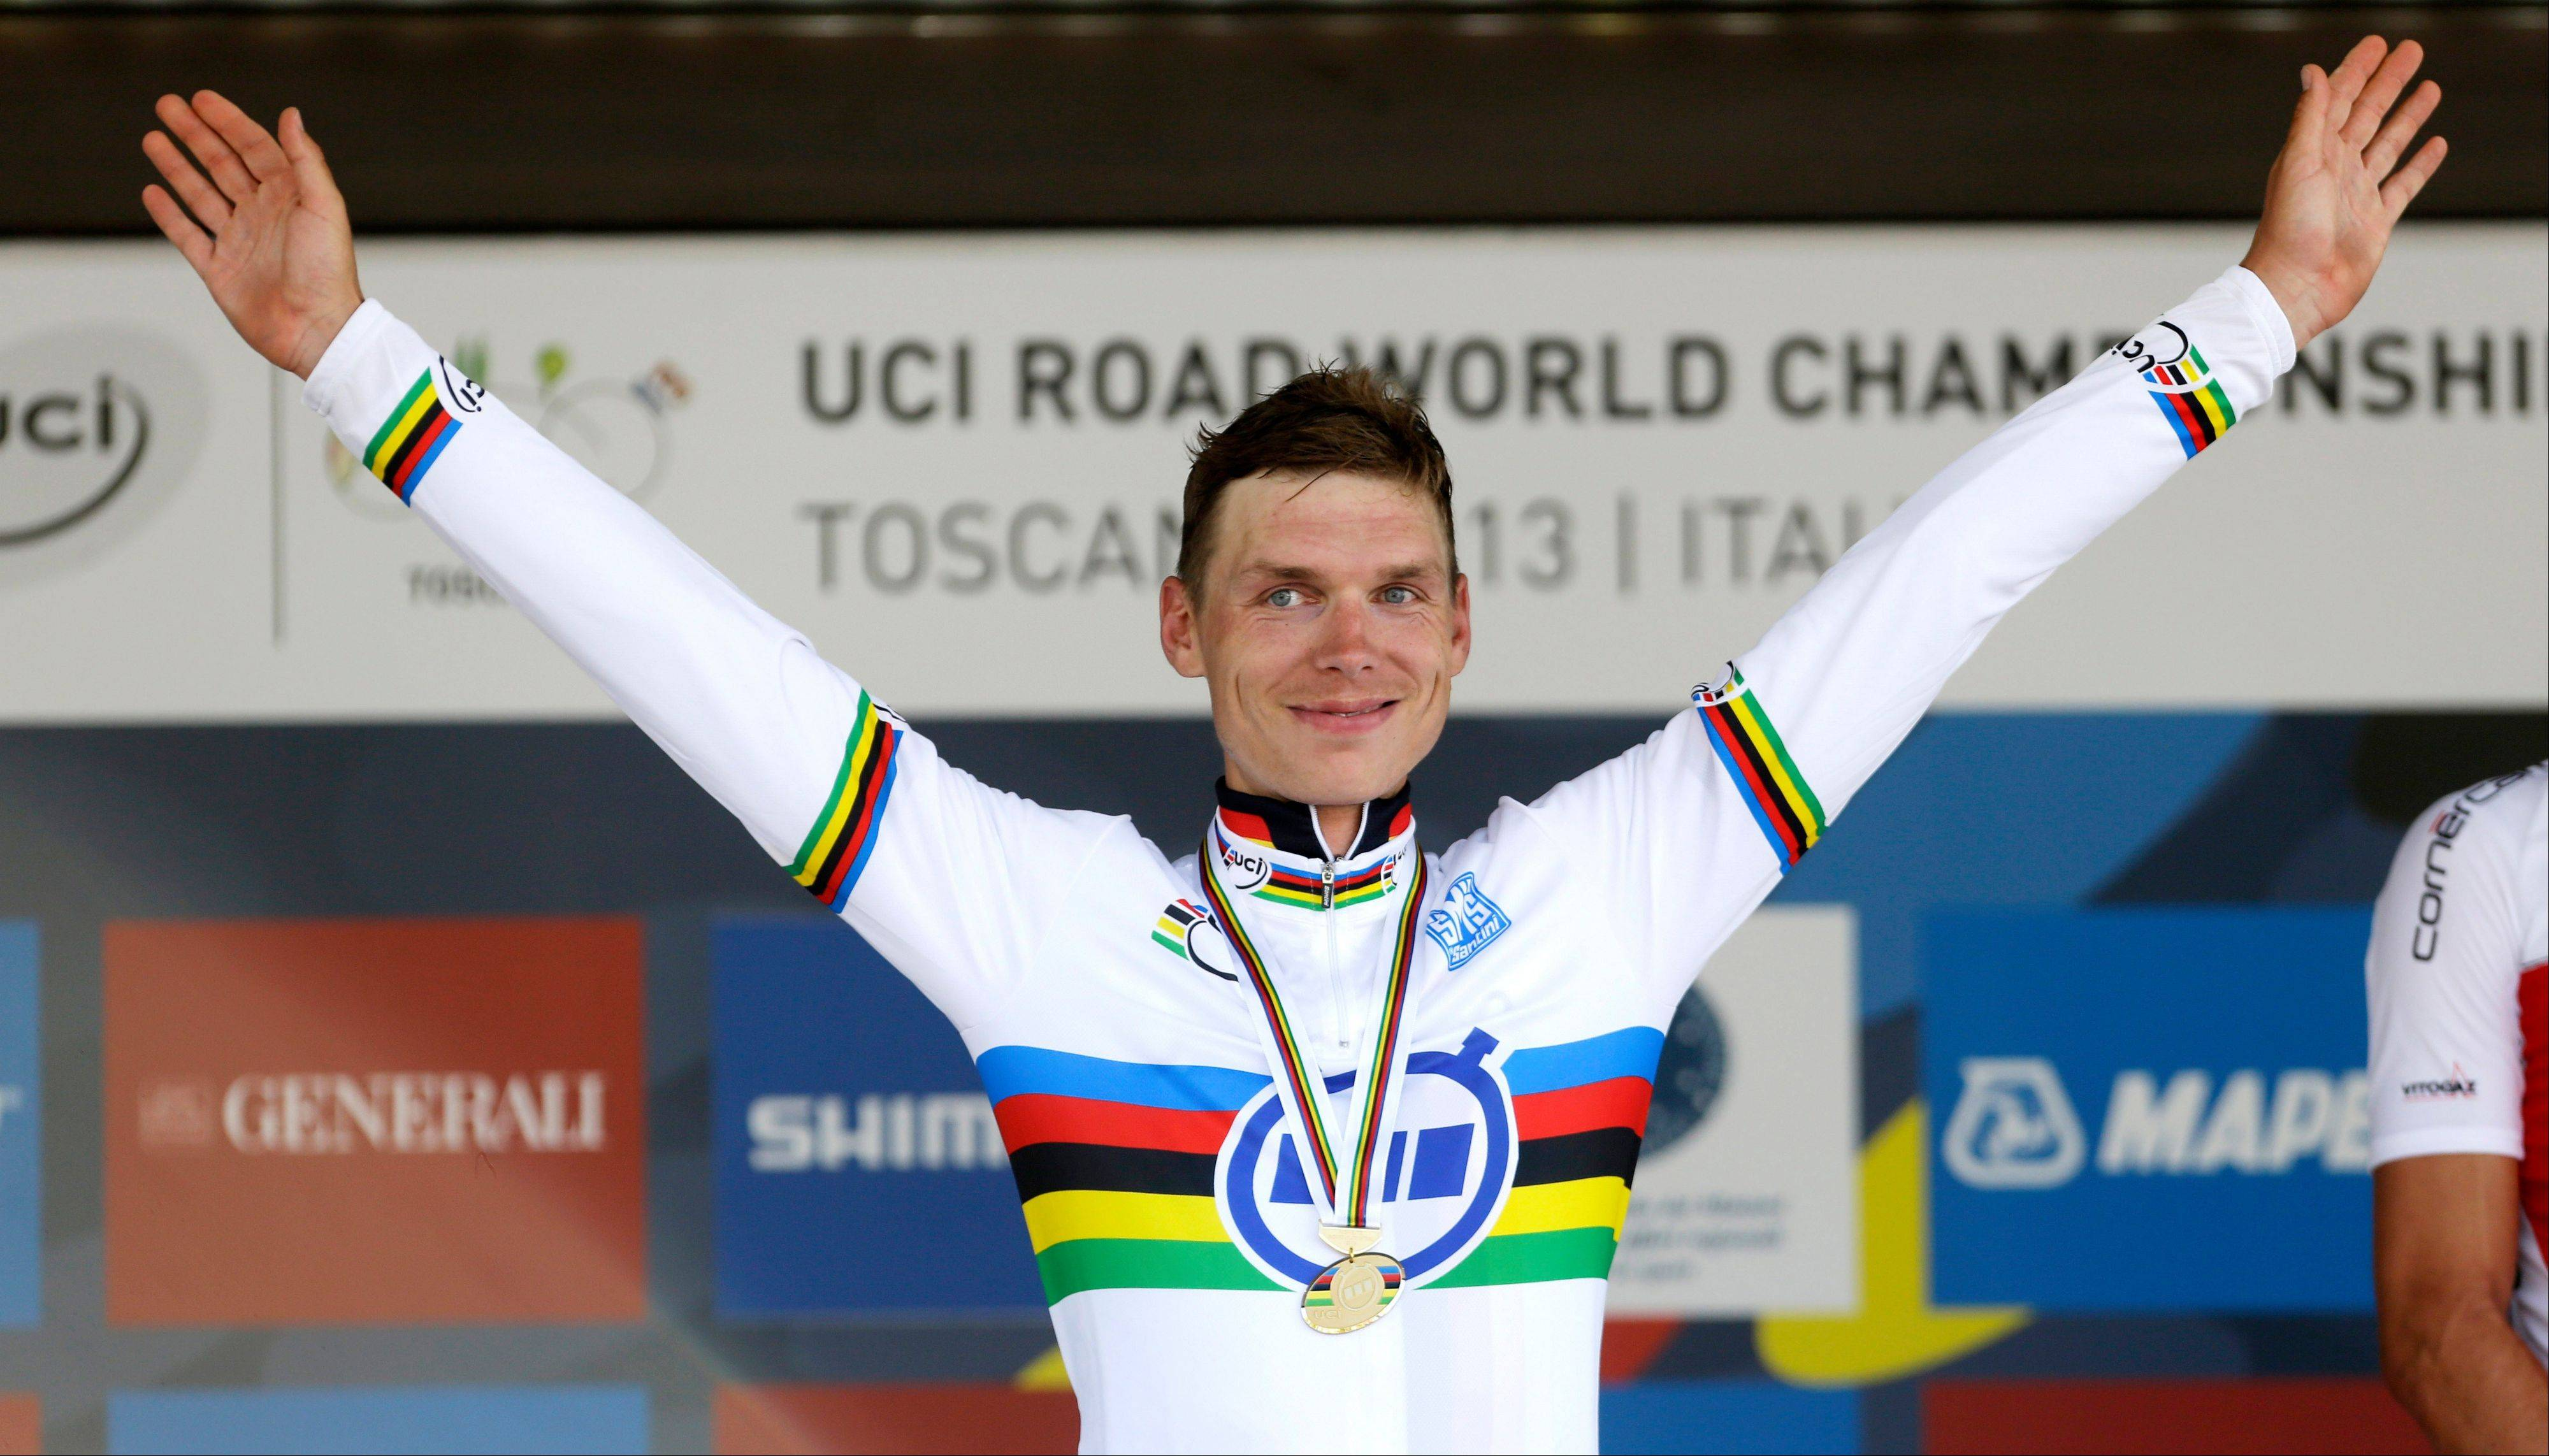 Tony Martin celebrates on the podium with the gold medal he won in the men's individual time trial at the road cycling world championships Wednesday in Florence, Italy.